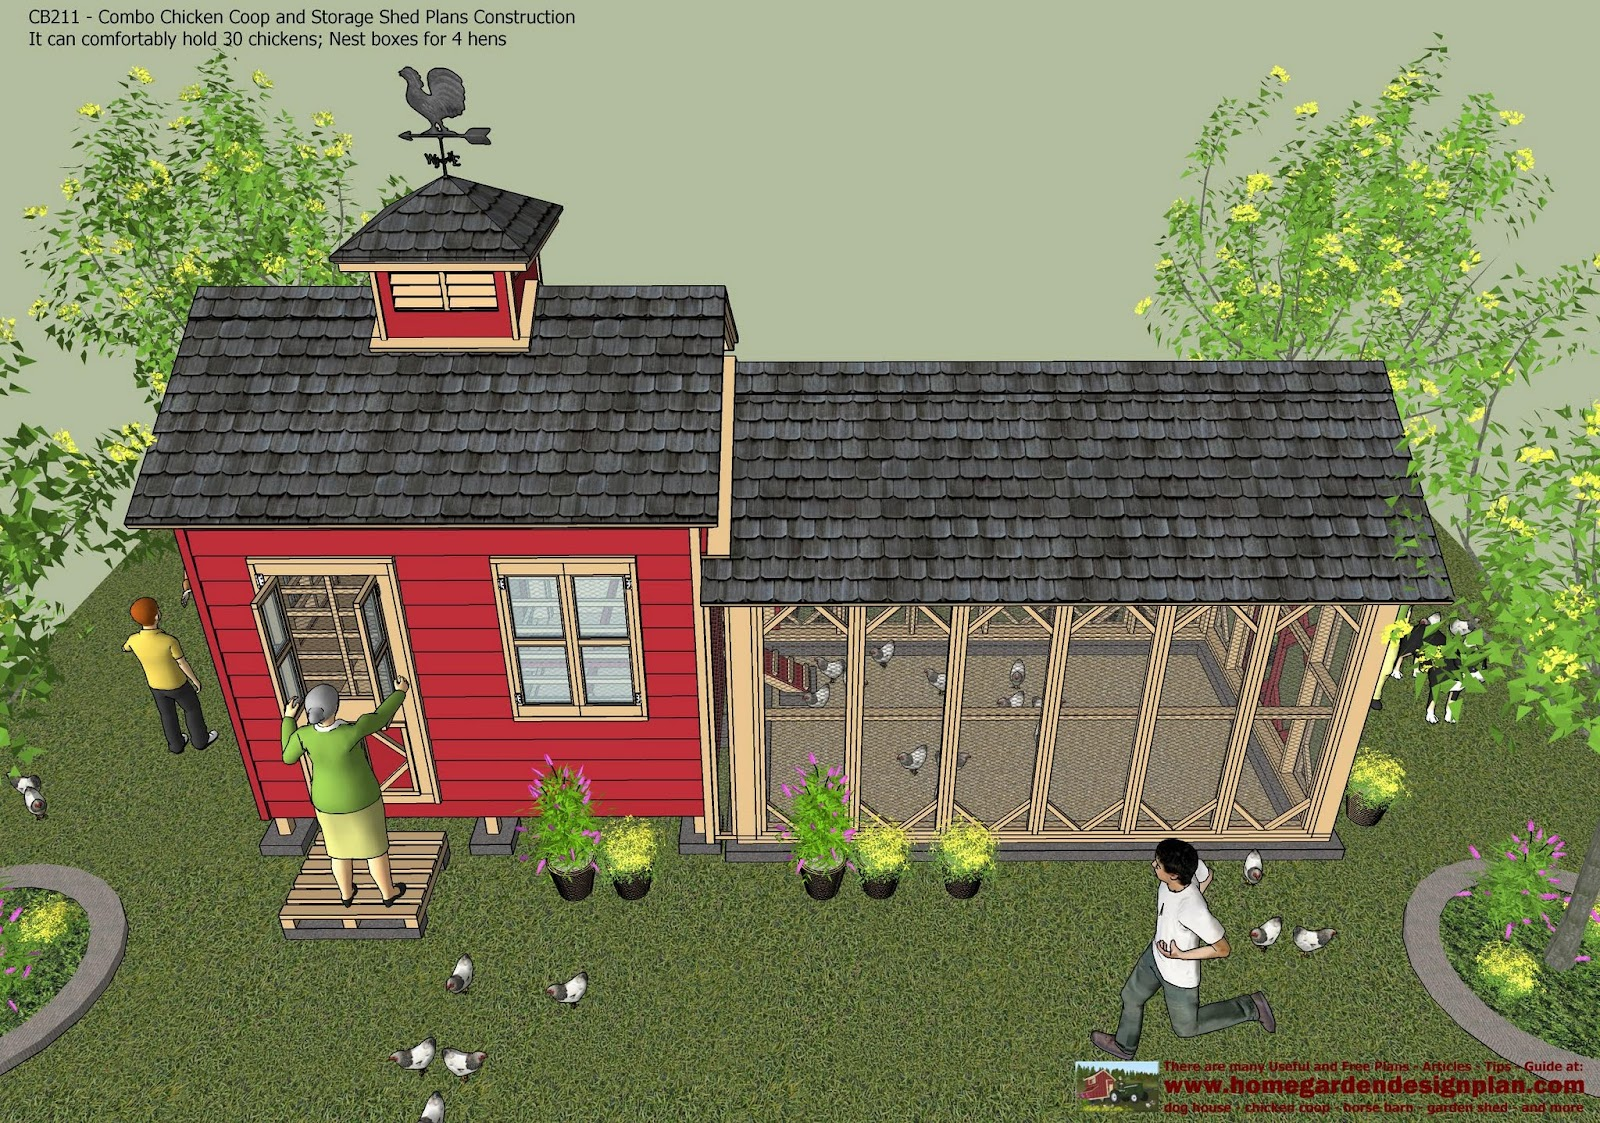 CB211   Combo Chicken Coop Garden Shed Plans   Chicken Coop Plans   Storage  Shed Plans Construction